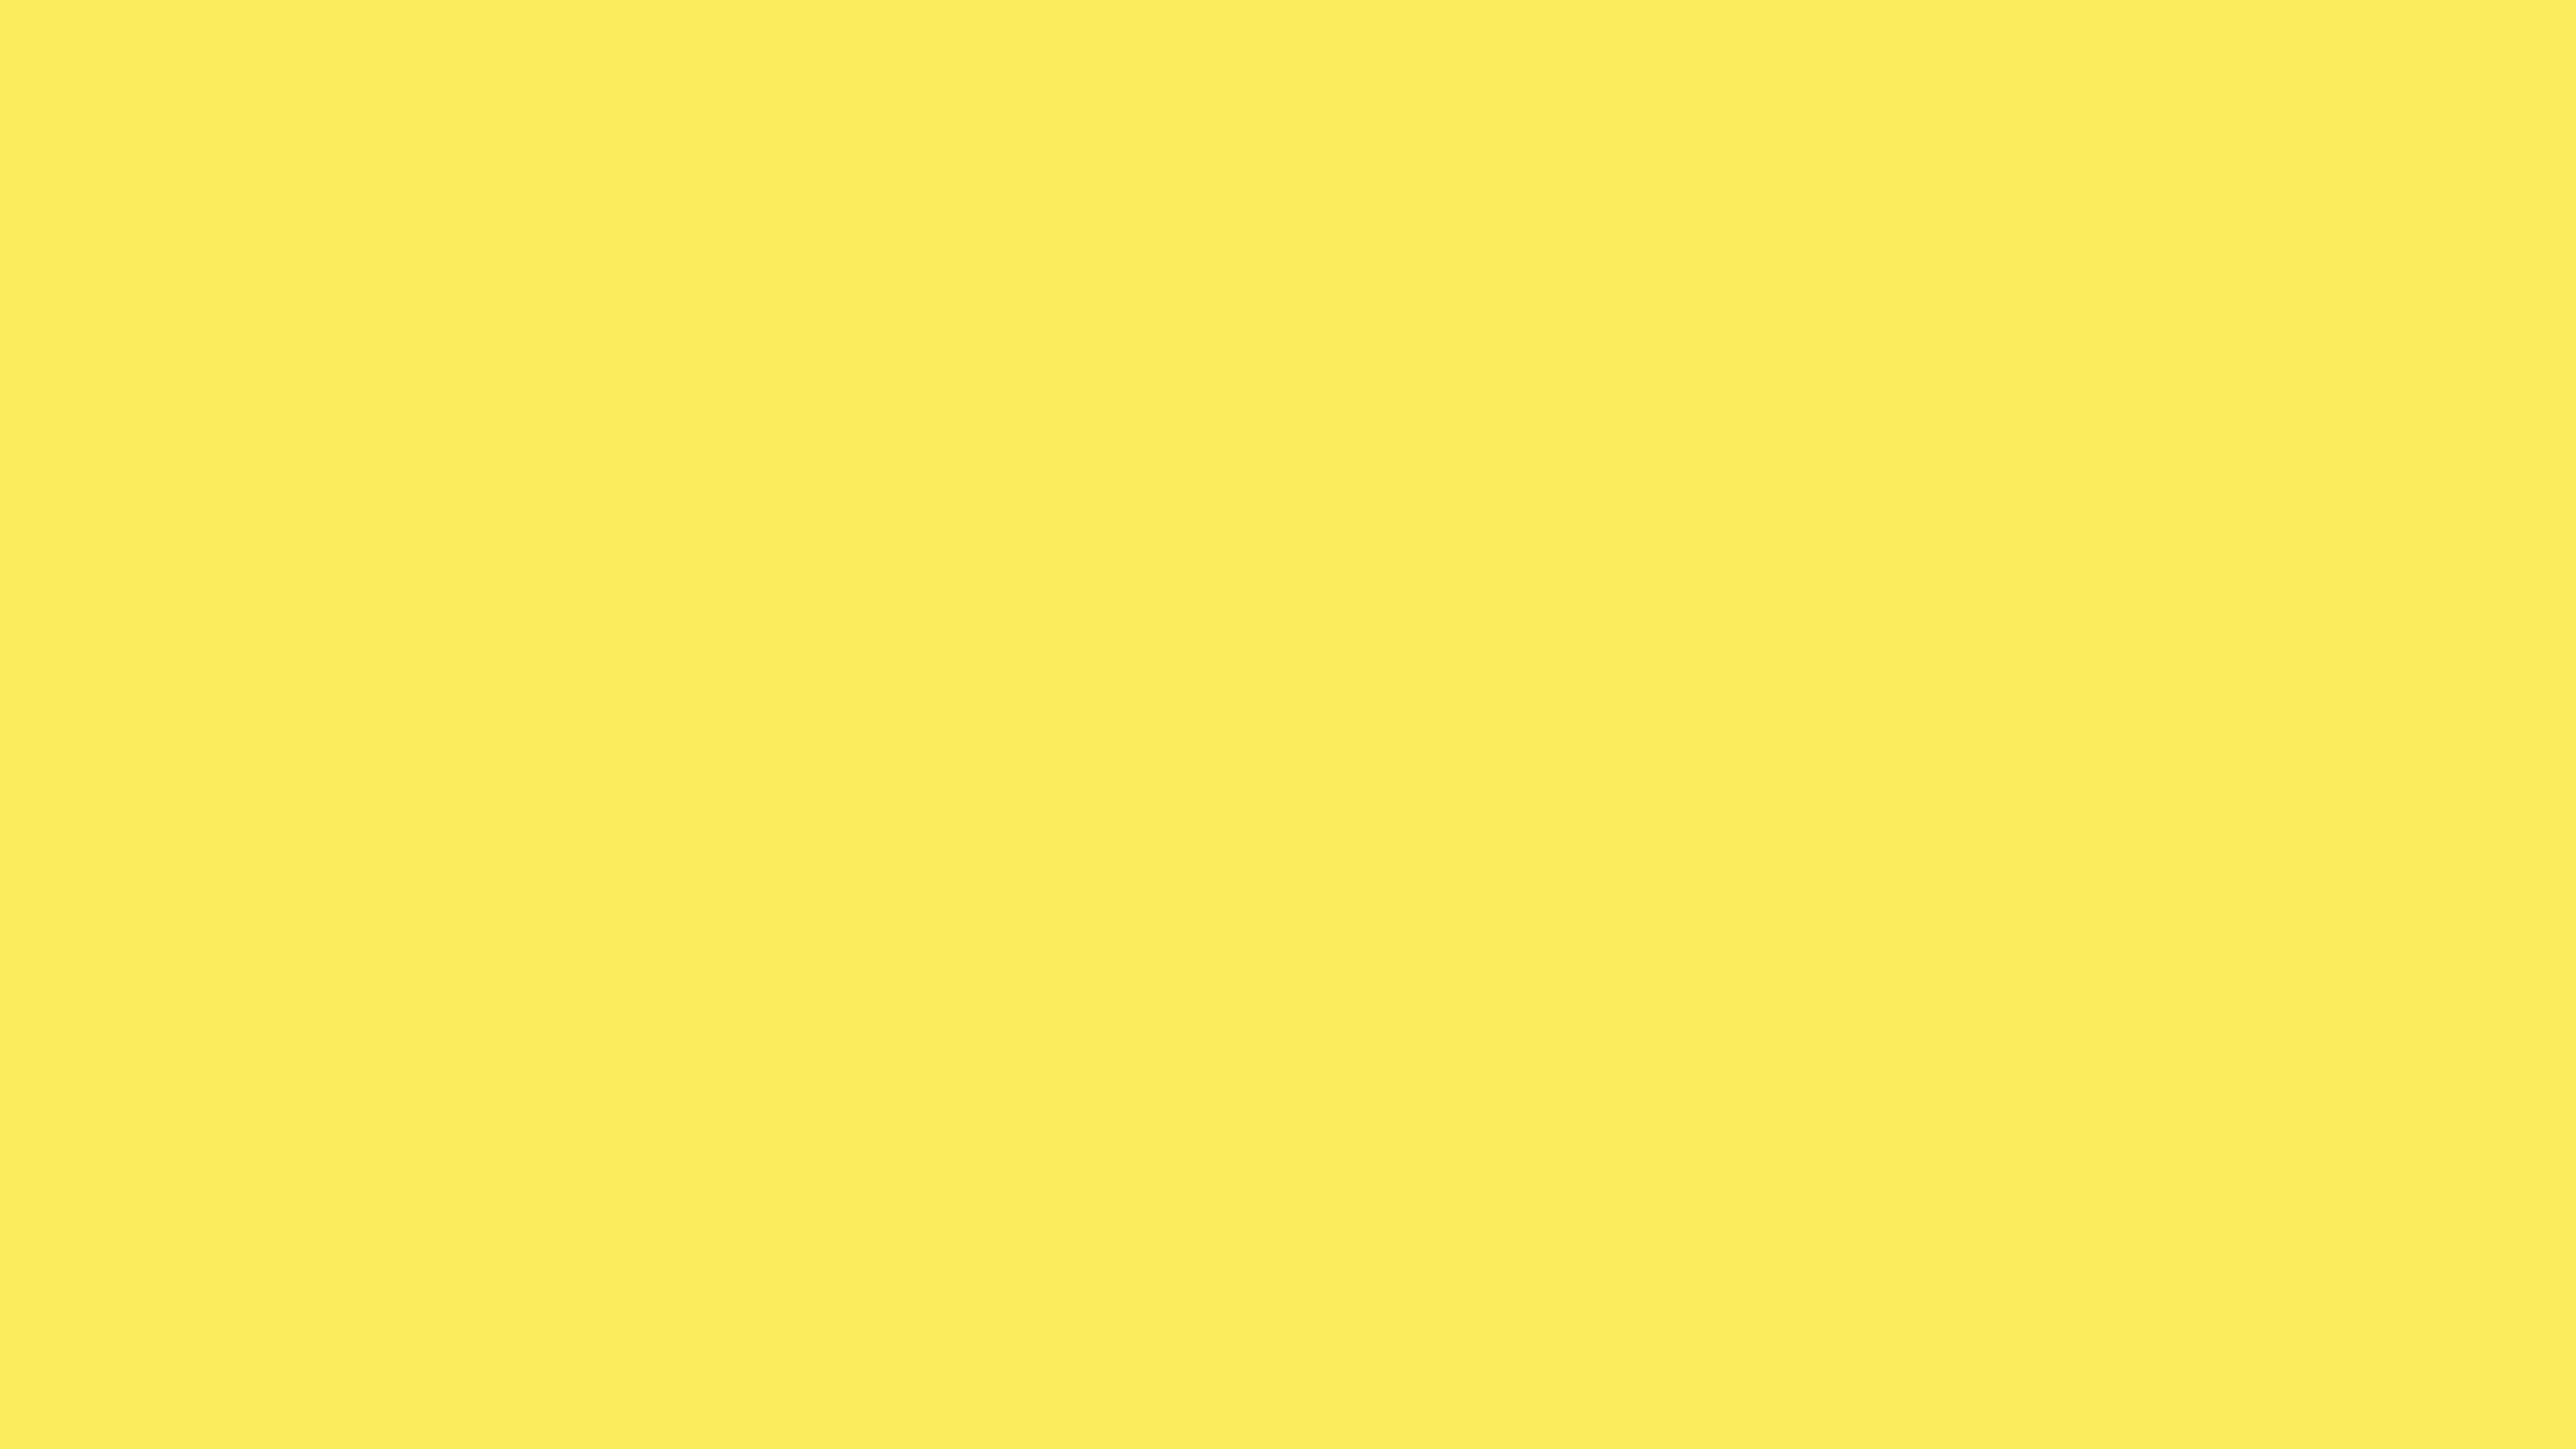 7680x4320 Corn Solid Color Background